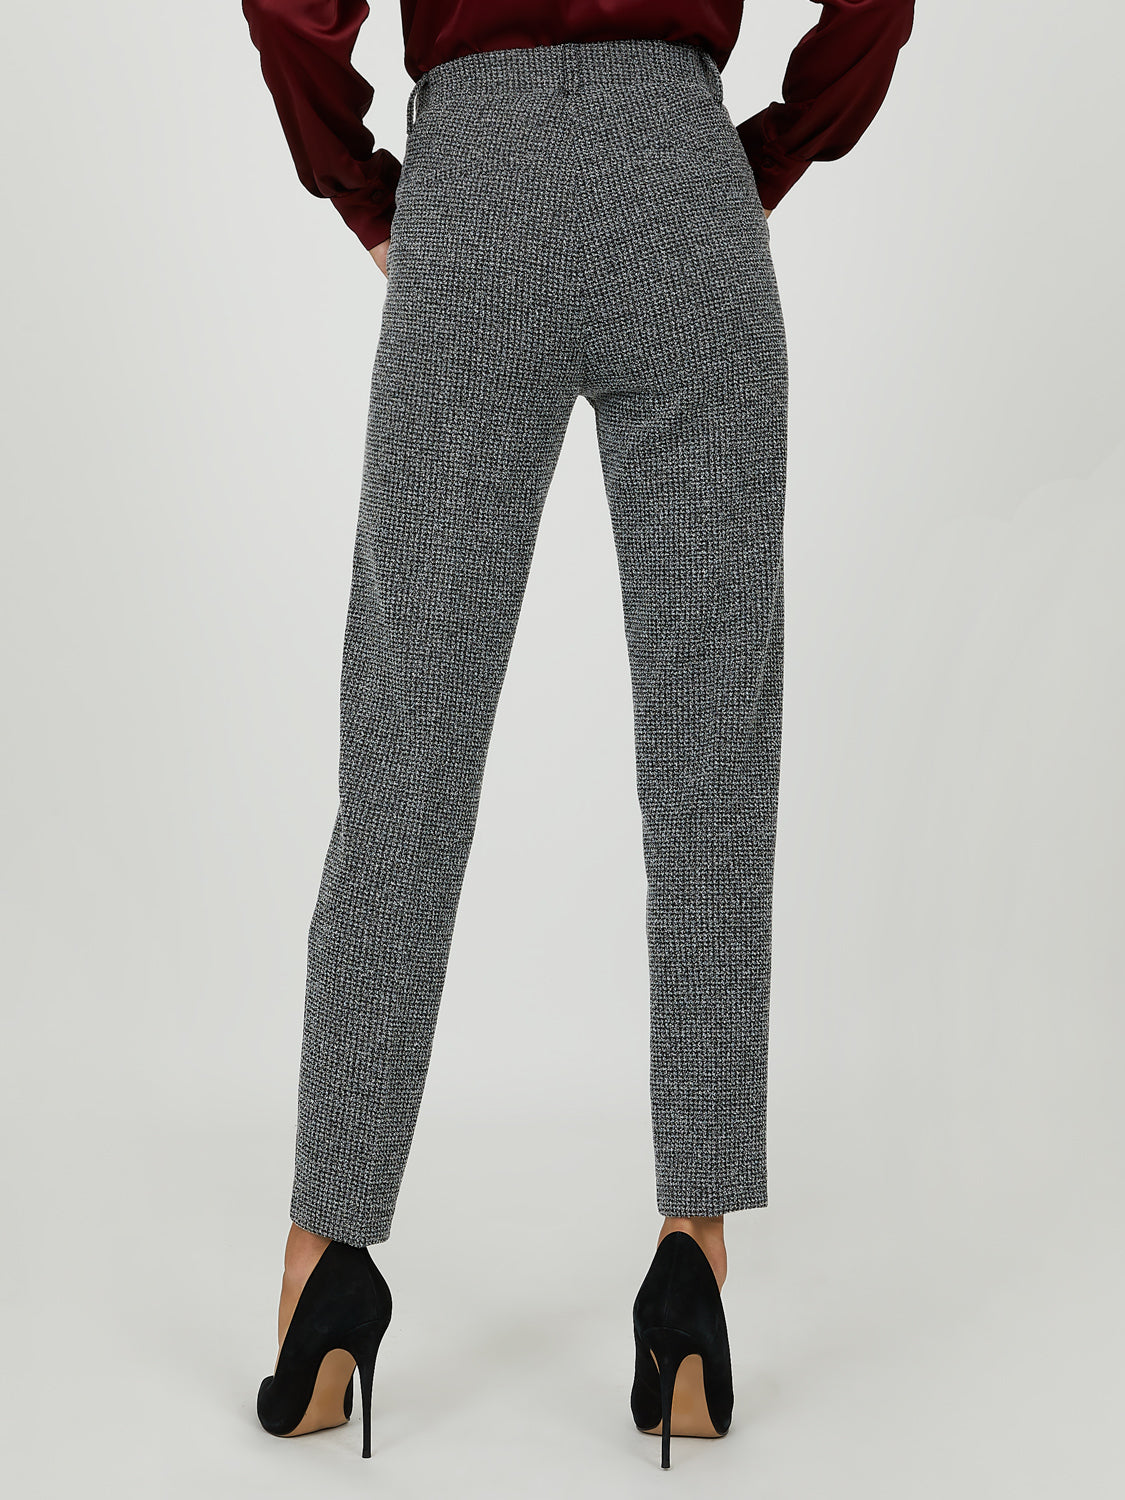 Houndstooth Knit Dress Pant